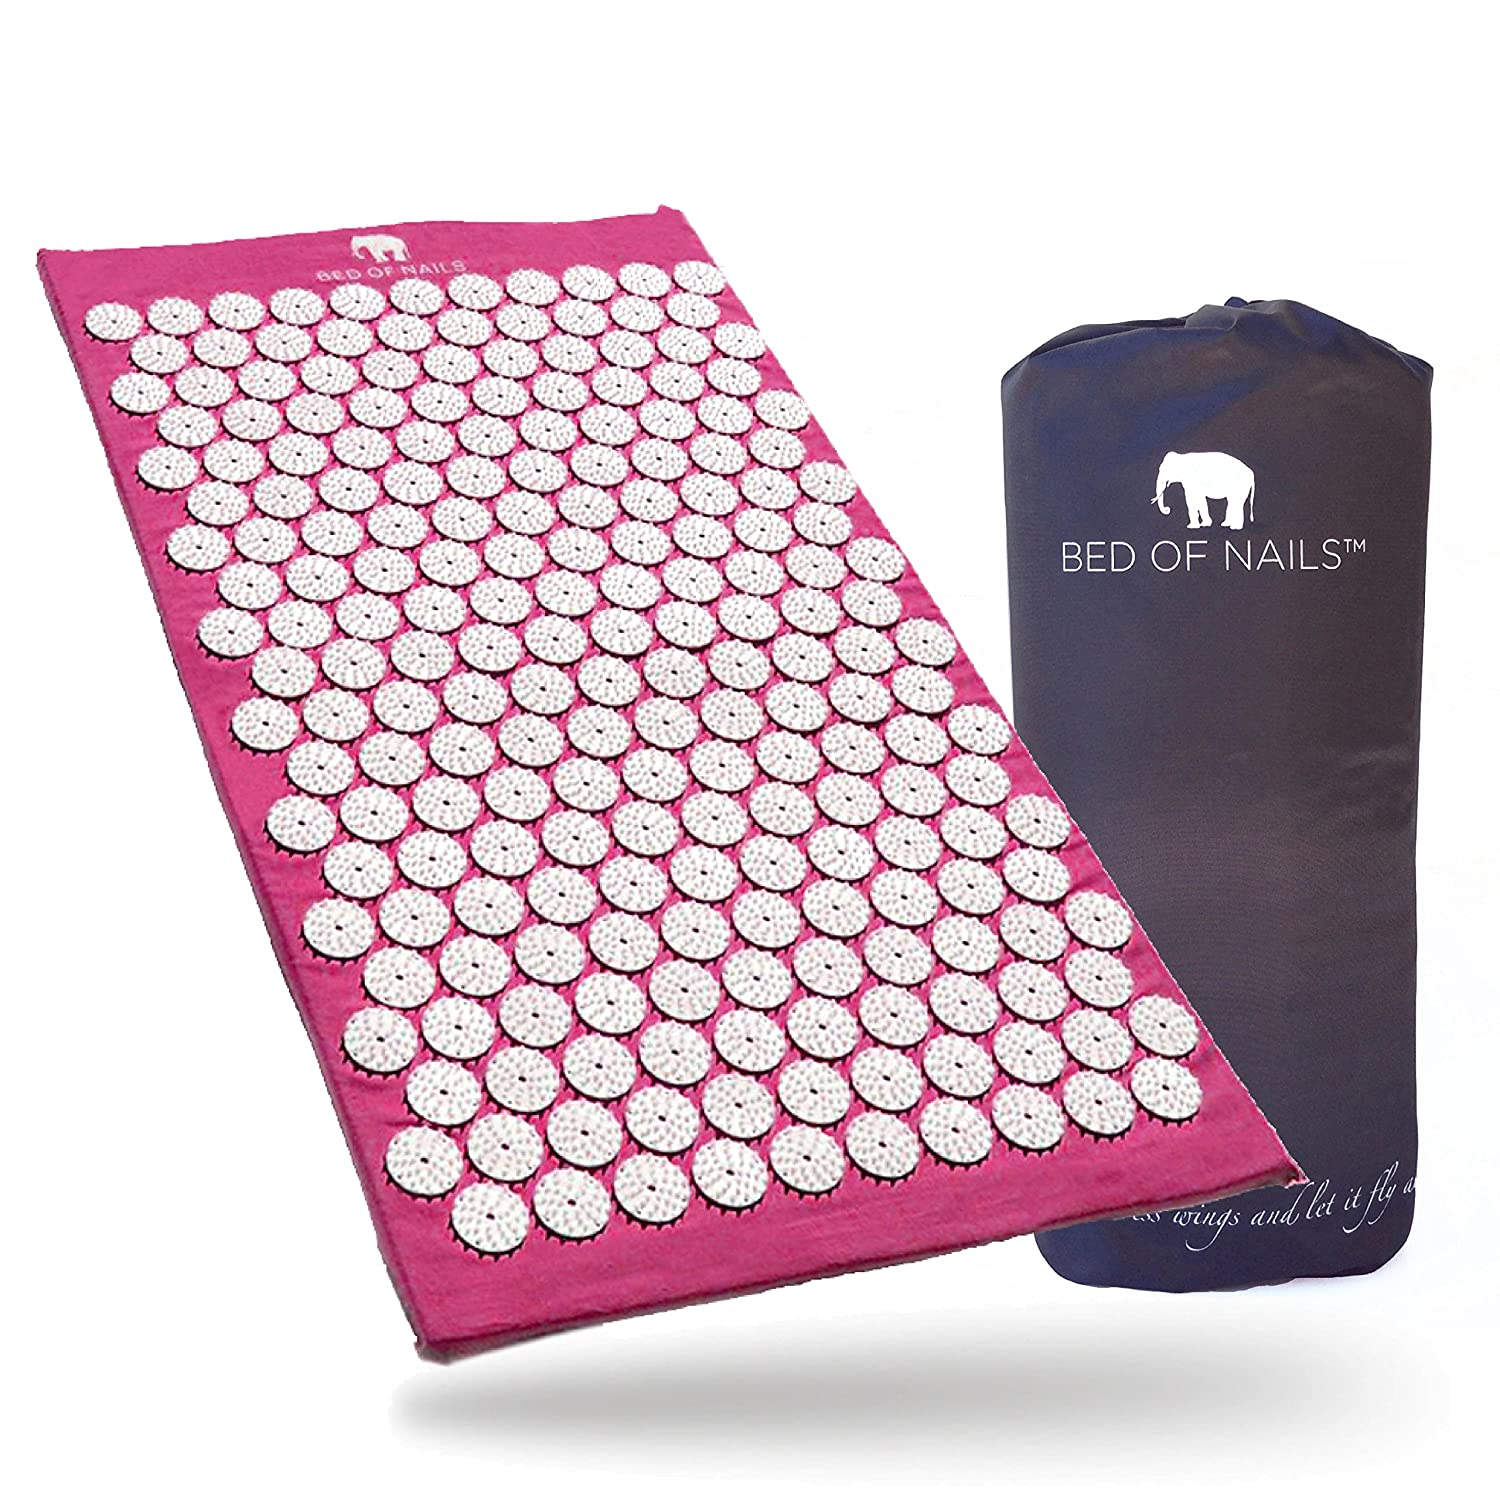 Amazon Bed of Nails Green Original Acupressure Mat for Back